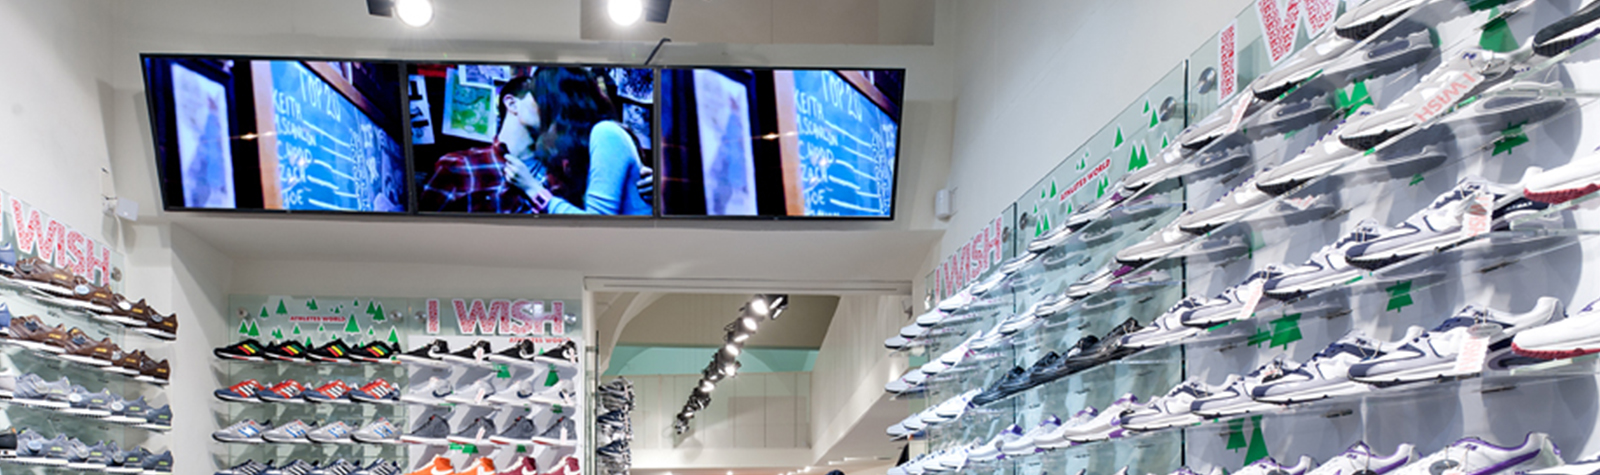 Digital signage and in-store radio provide a unique shopping experience at AW LAB